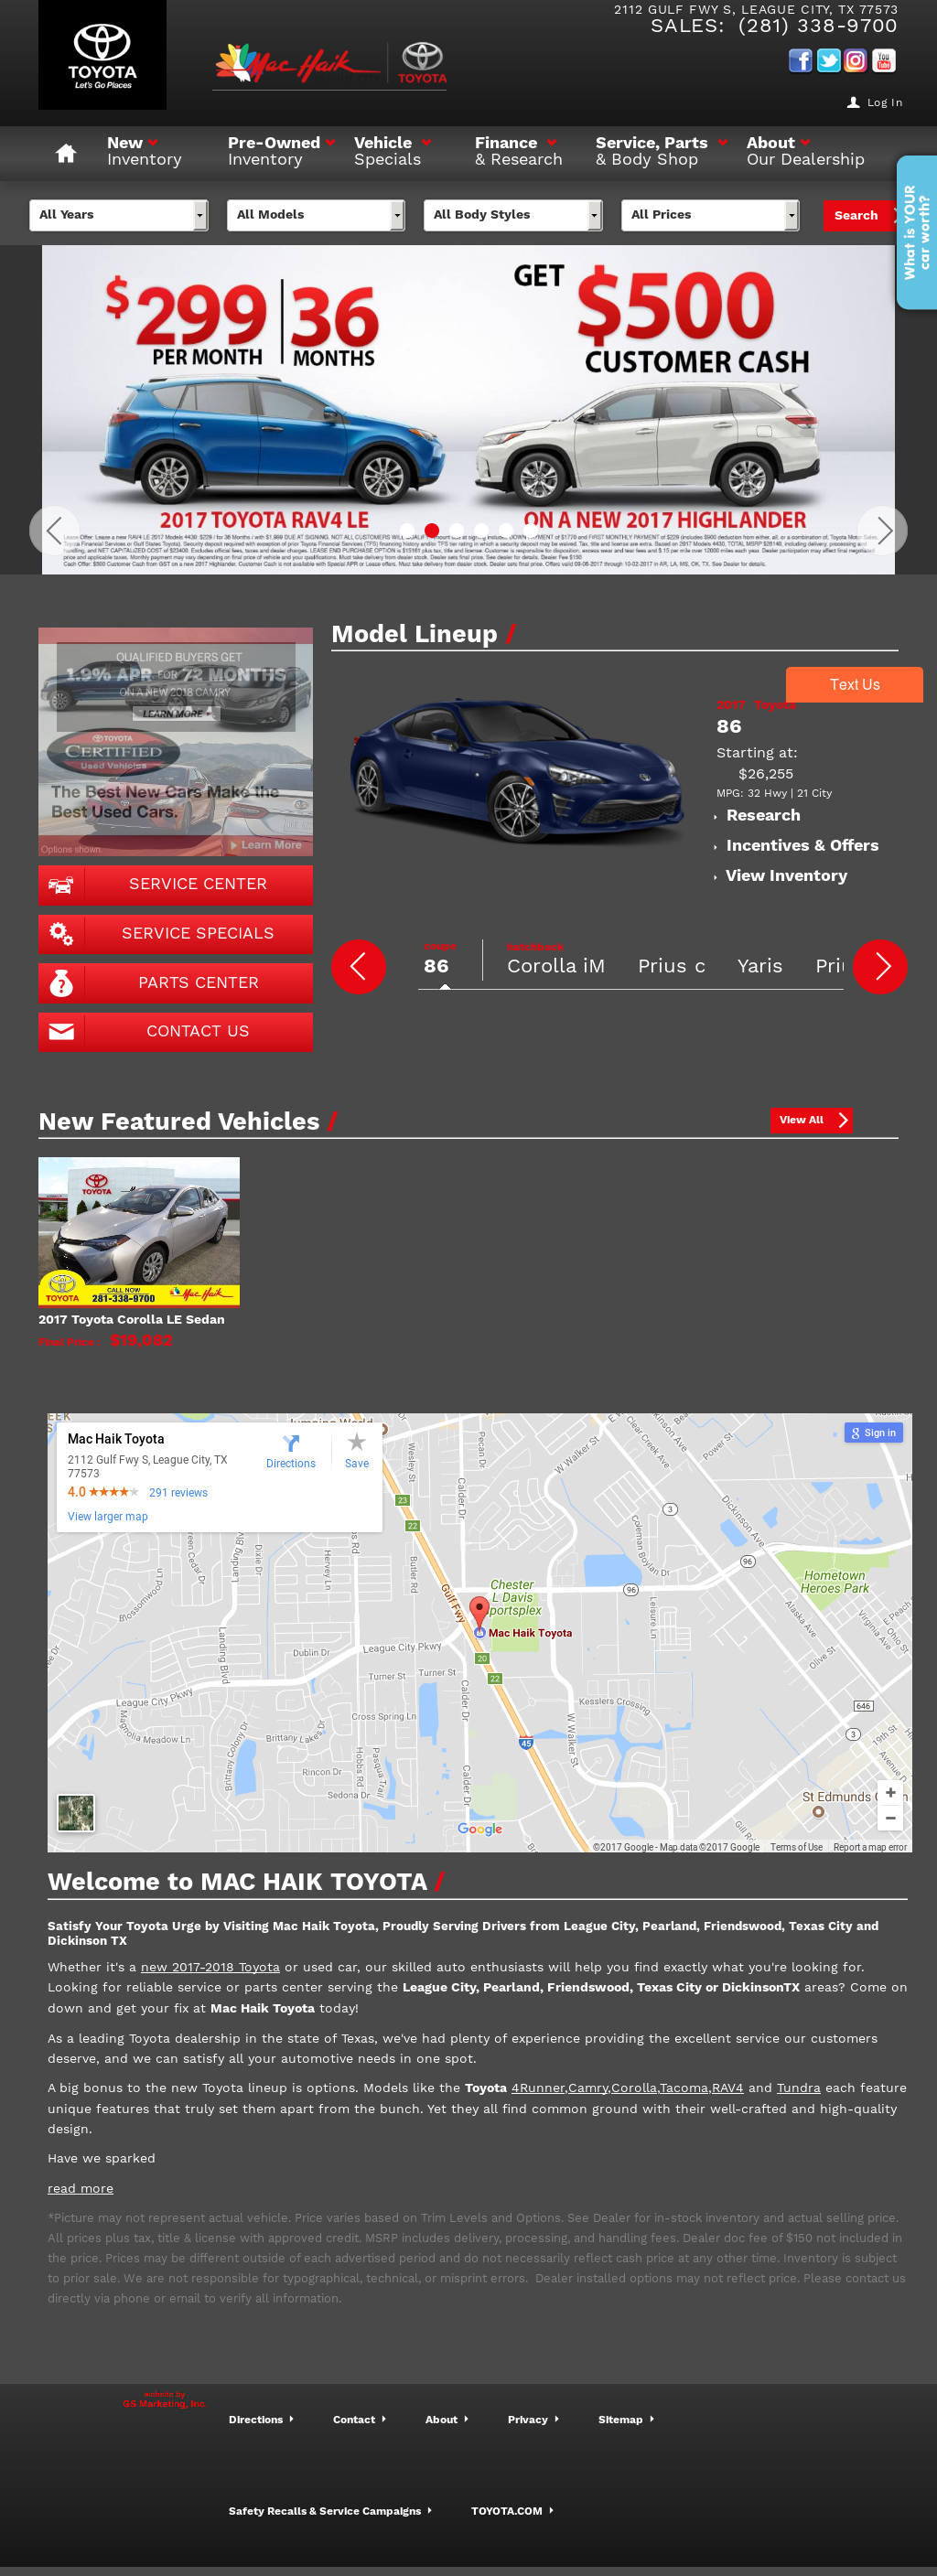 Superior Star Toyota Website History